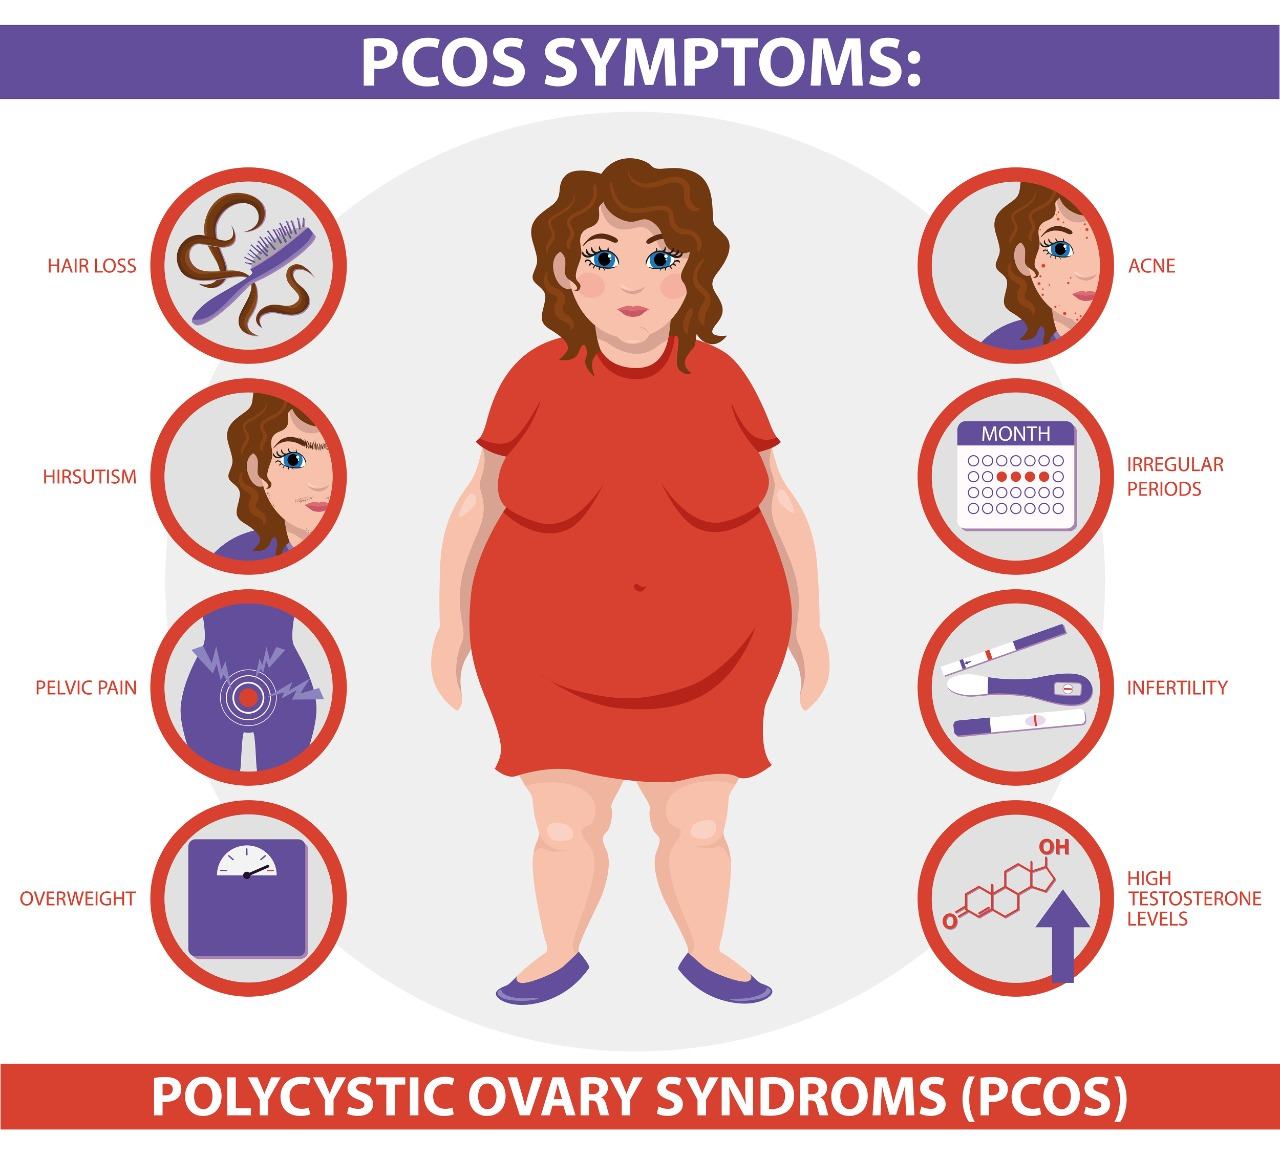 7 days Indian Diet plan for Weight Loss in PCOS / PCOD